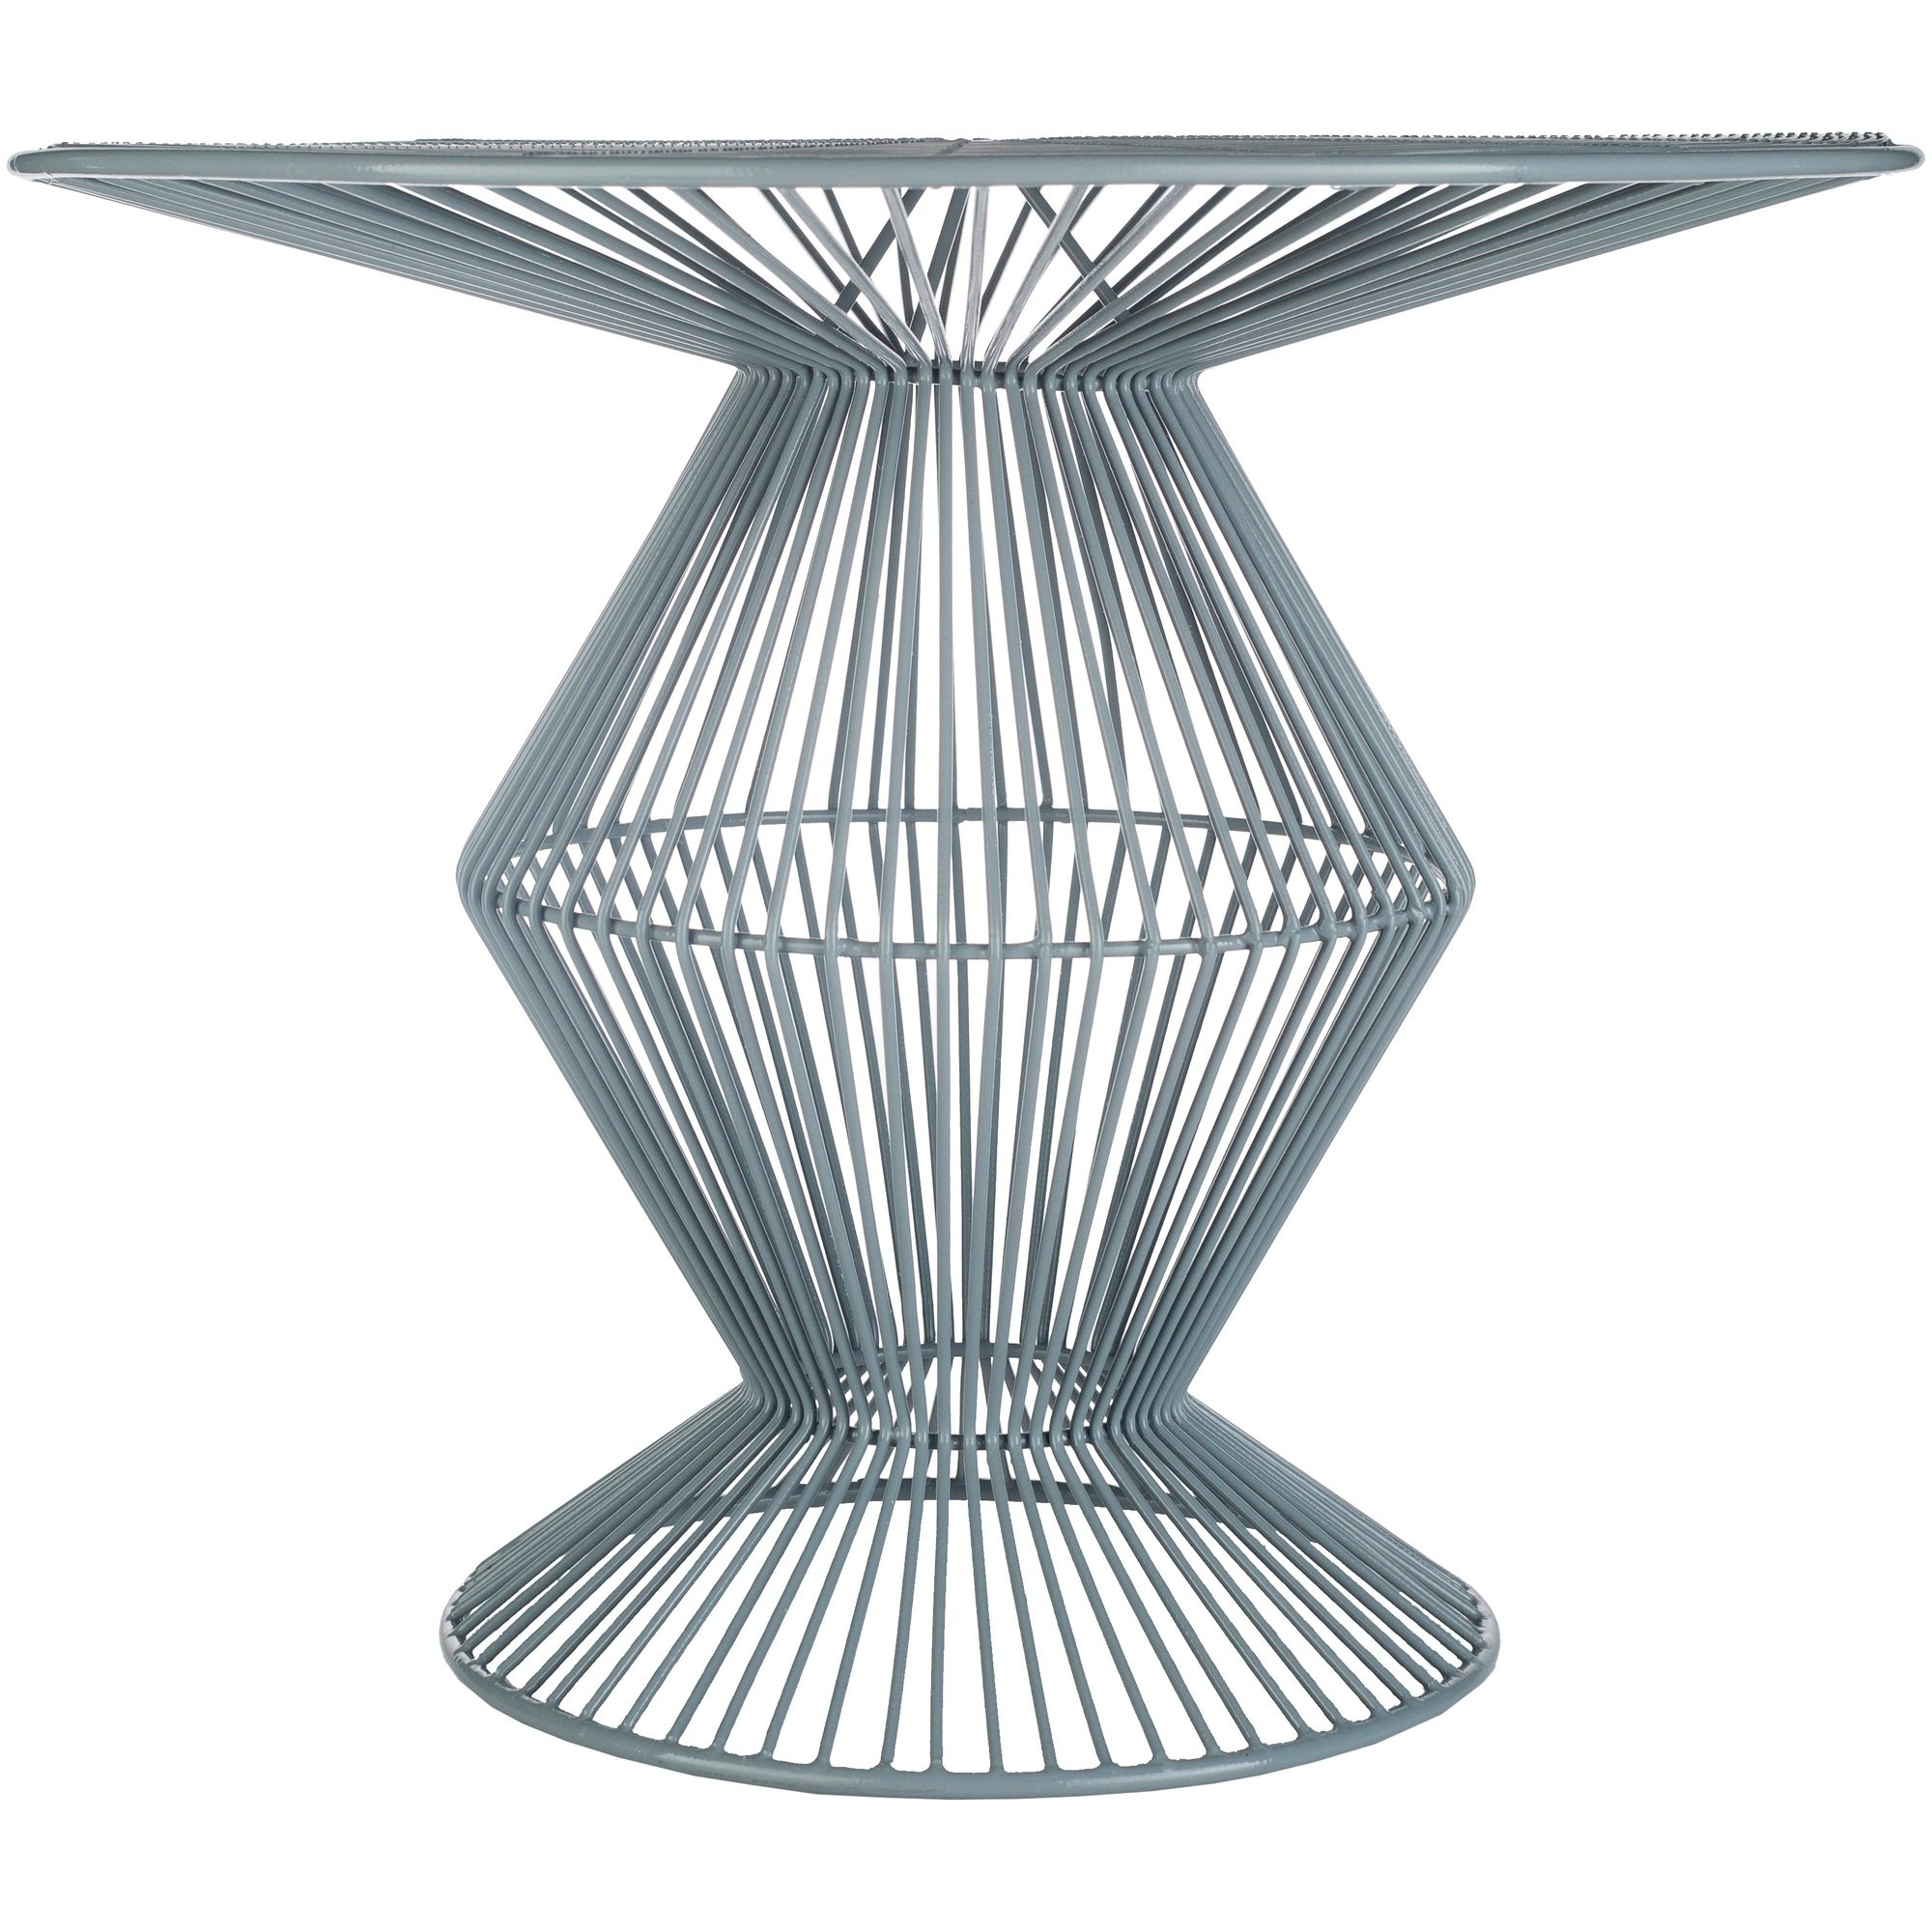 ryder grey modern metal wire accent table free small shipping today dale tiffany sconce narrow cocktail door threshold lamps shallow console cabinet youth furniture with basket